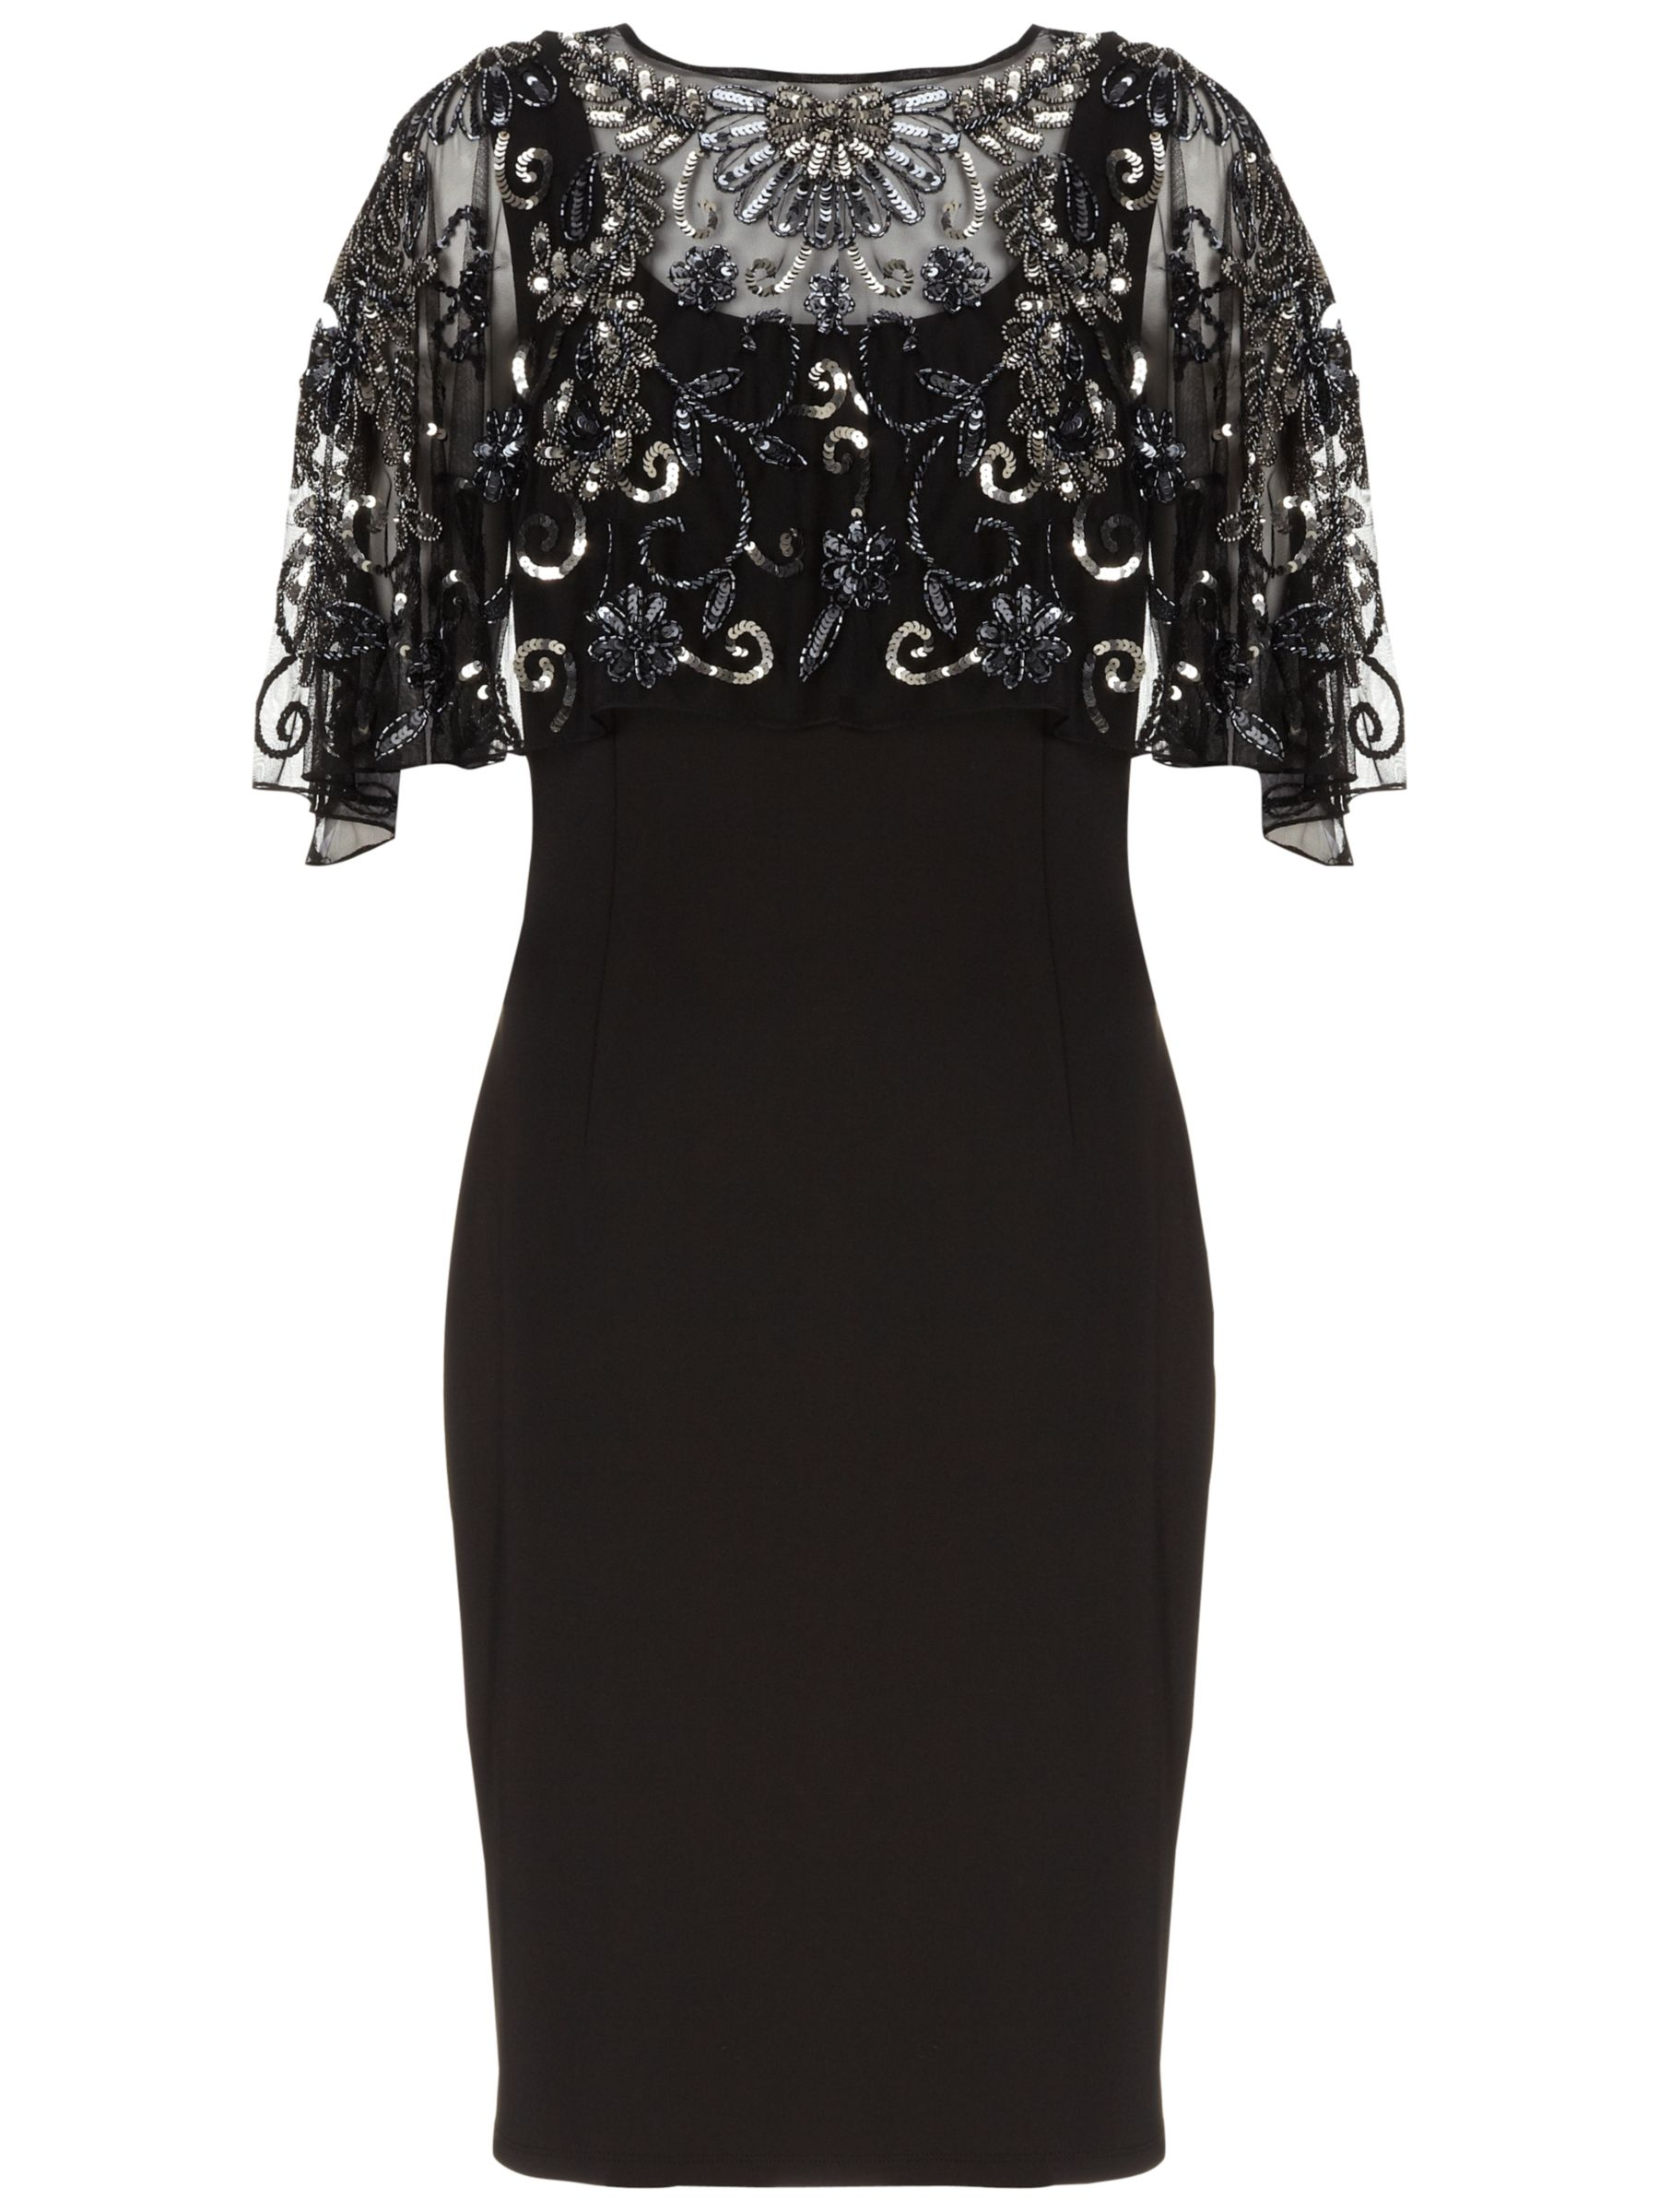 Gina Bacconi Scuba Dress with Beaded Cape, Black